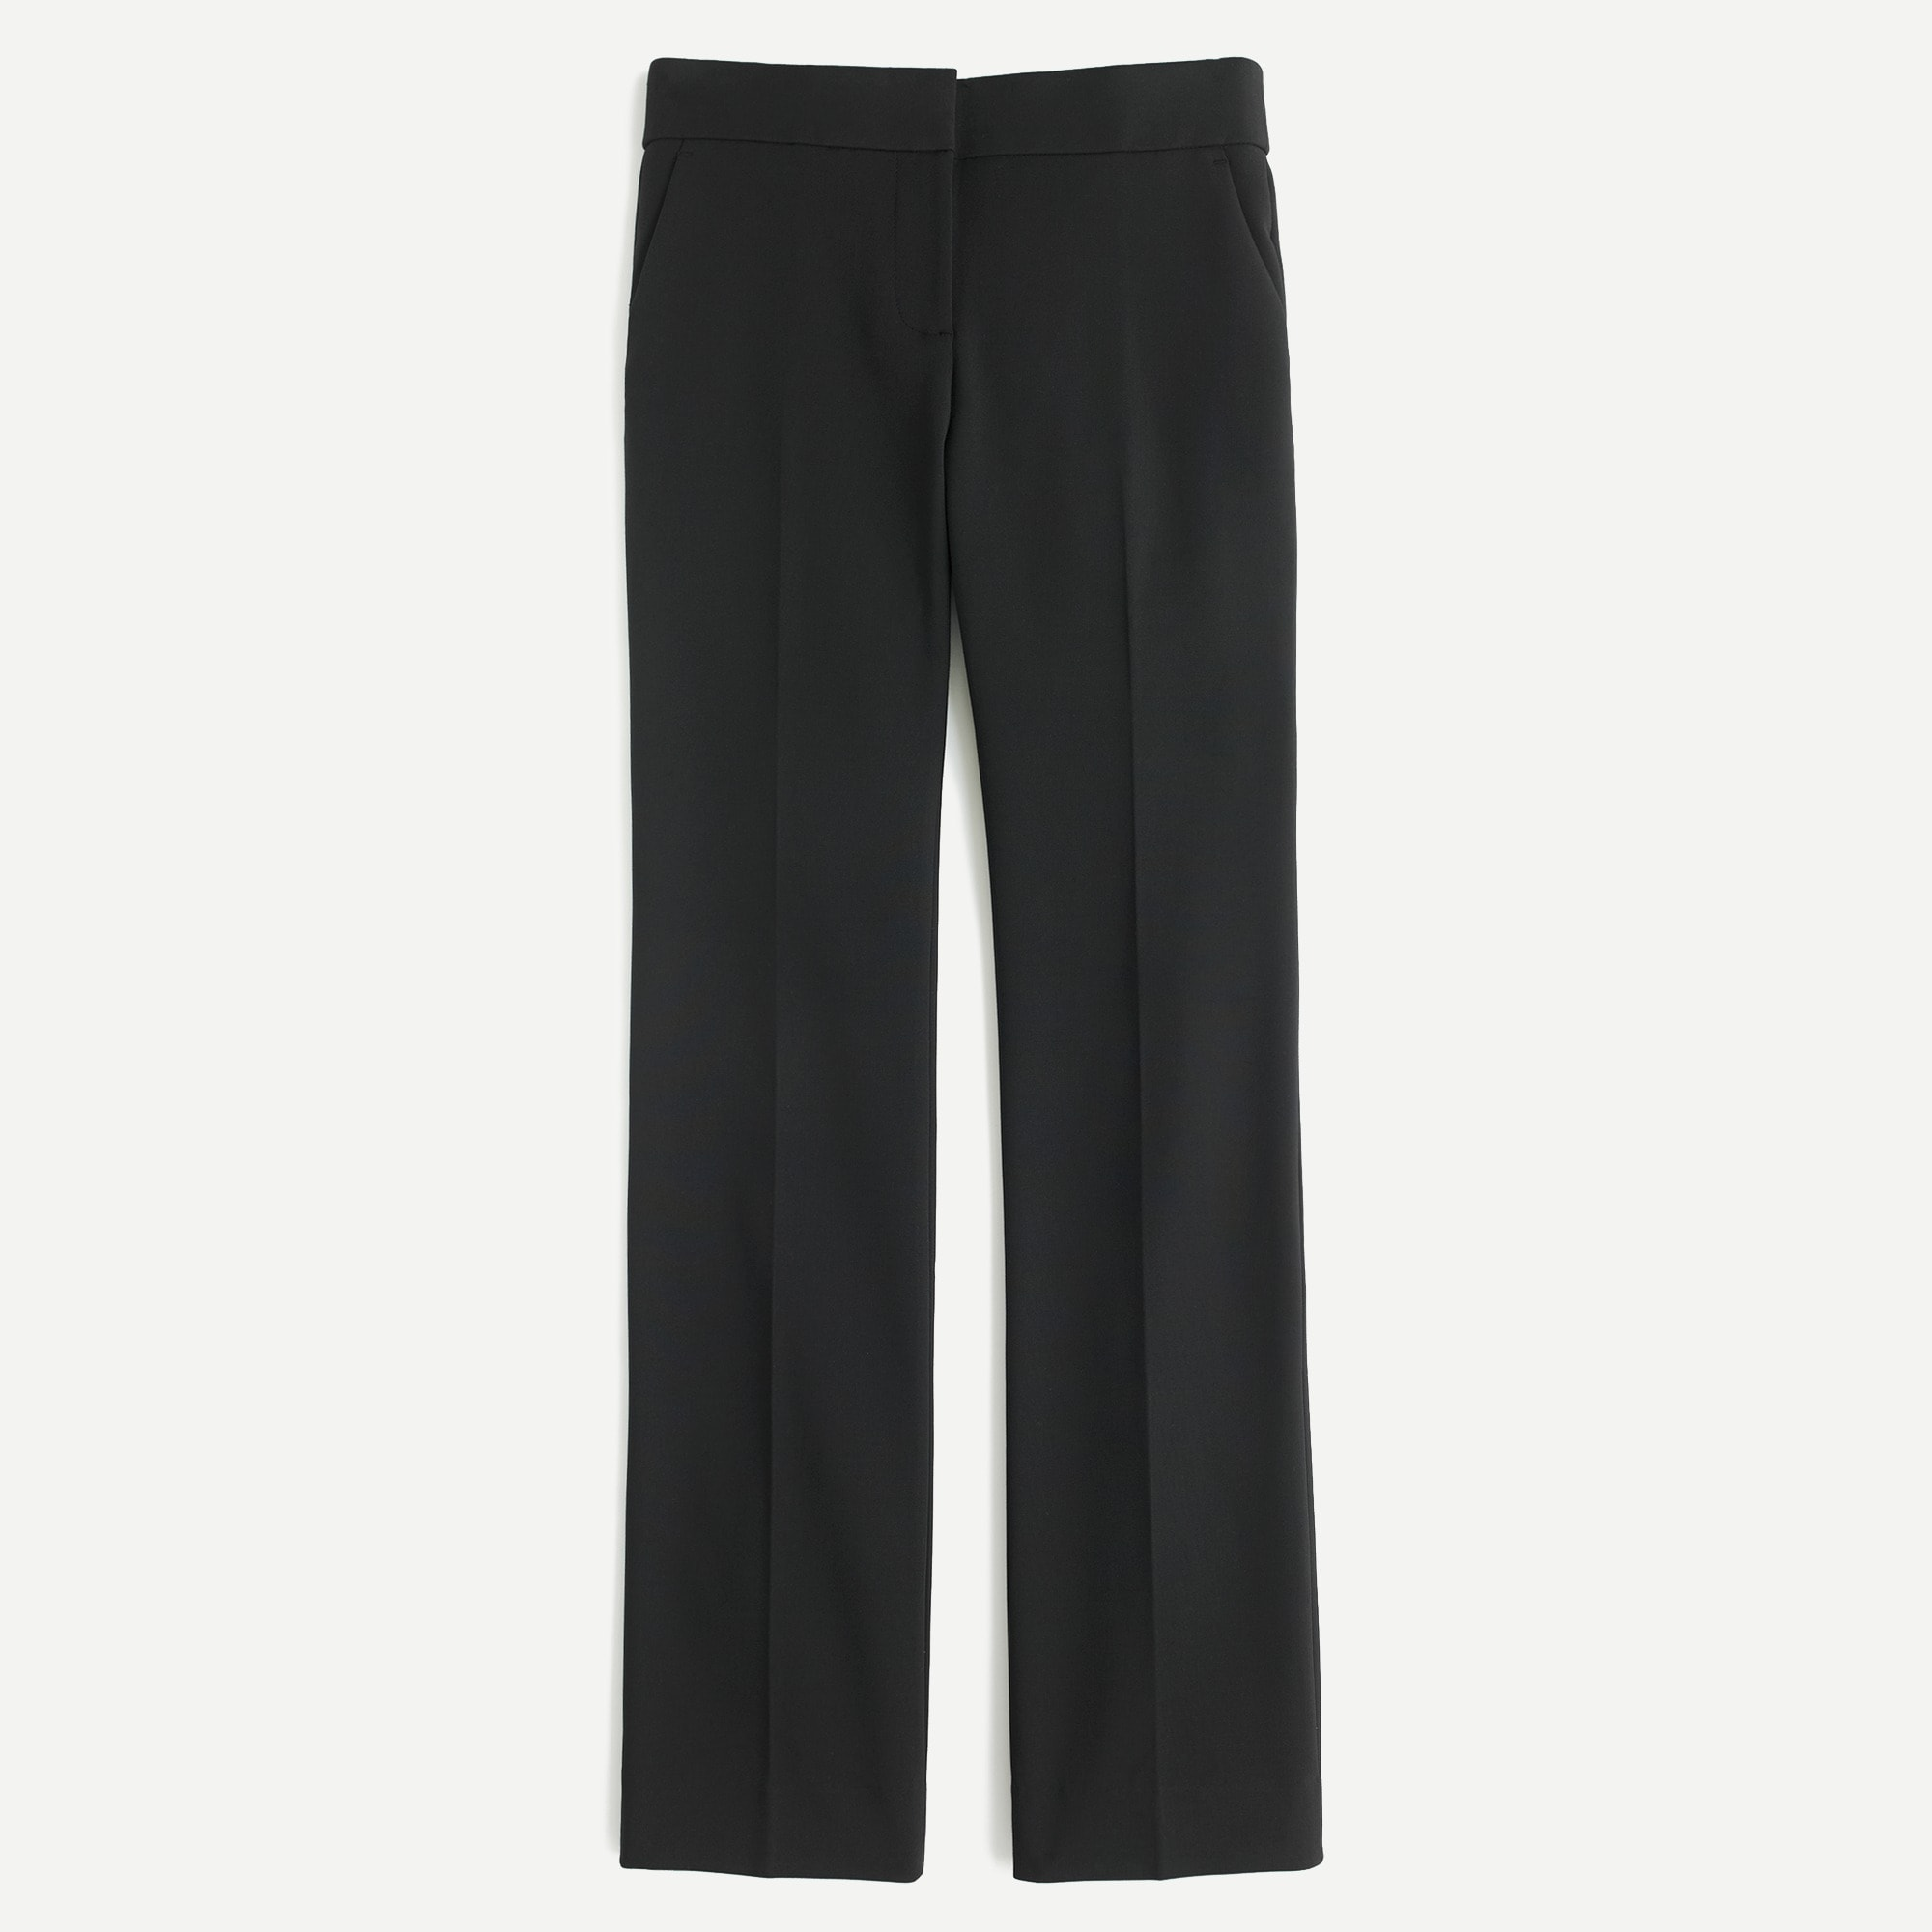 Image 5 for Edie full-length trouser in four-season stretch